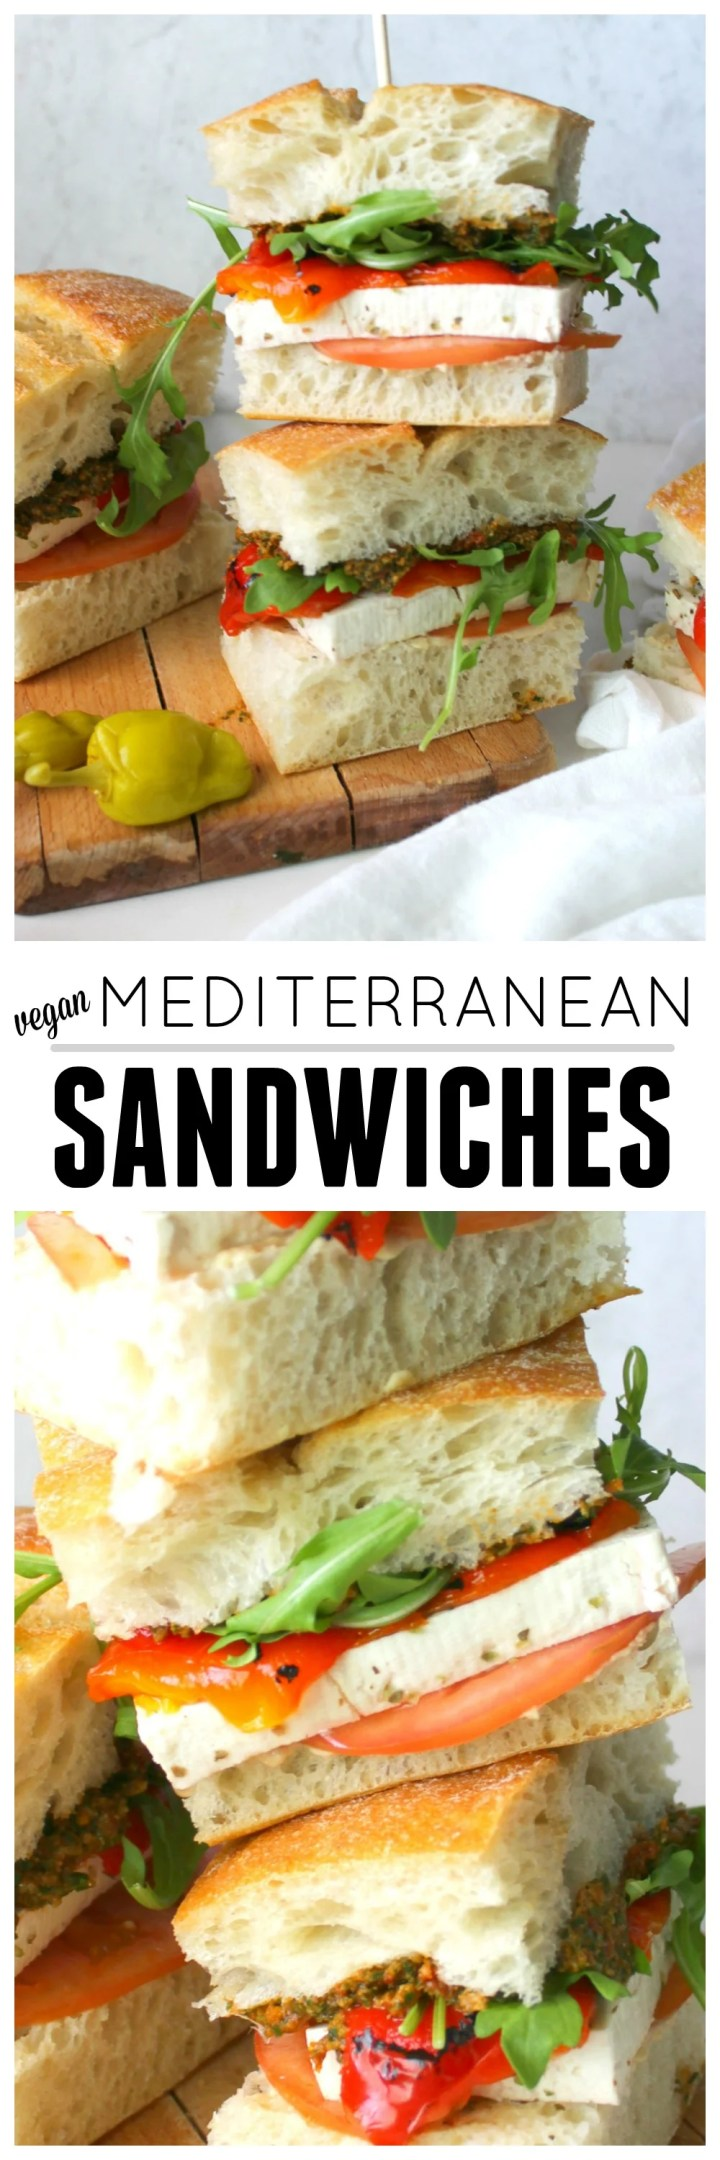 These Vegan Mediterranean Sandwiches are packed with sun-dried tomato & basil spread, roasted red peppers and marinated tofu   ThisSavoryVegan.com